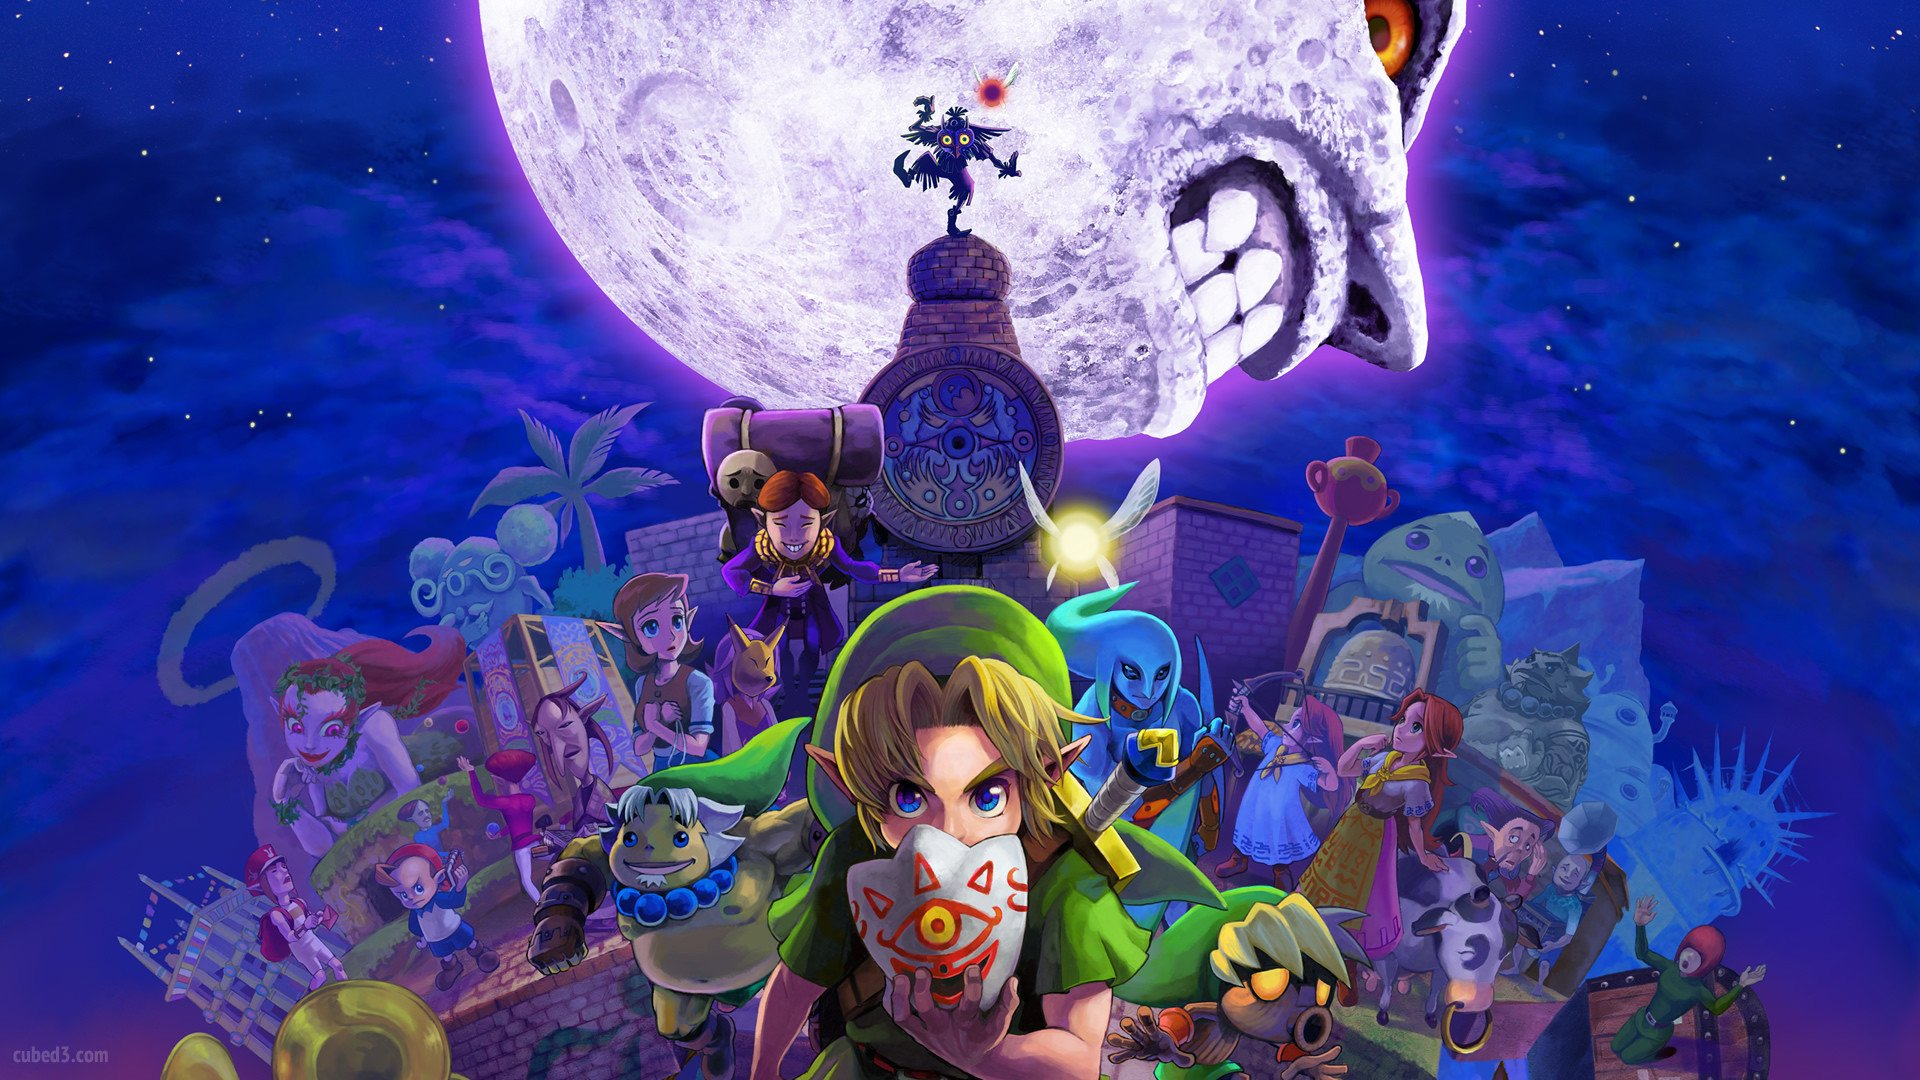 The Legend Of Zelda Hd Wallpaper The Legend Of Zelda Majora S Mask 3d Wallpaper Full Hd